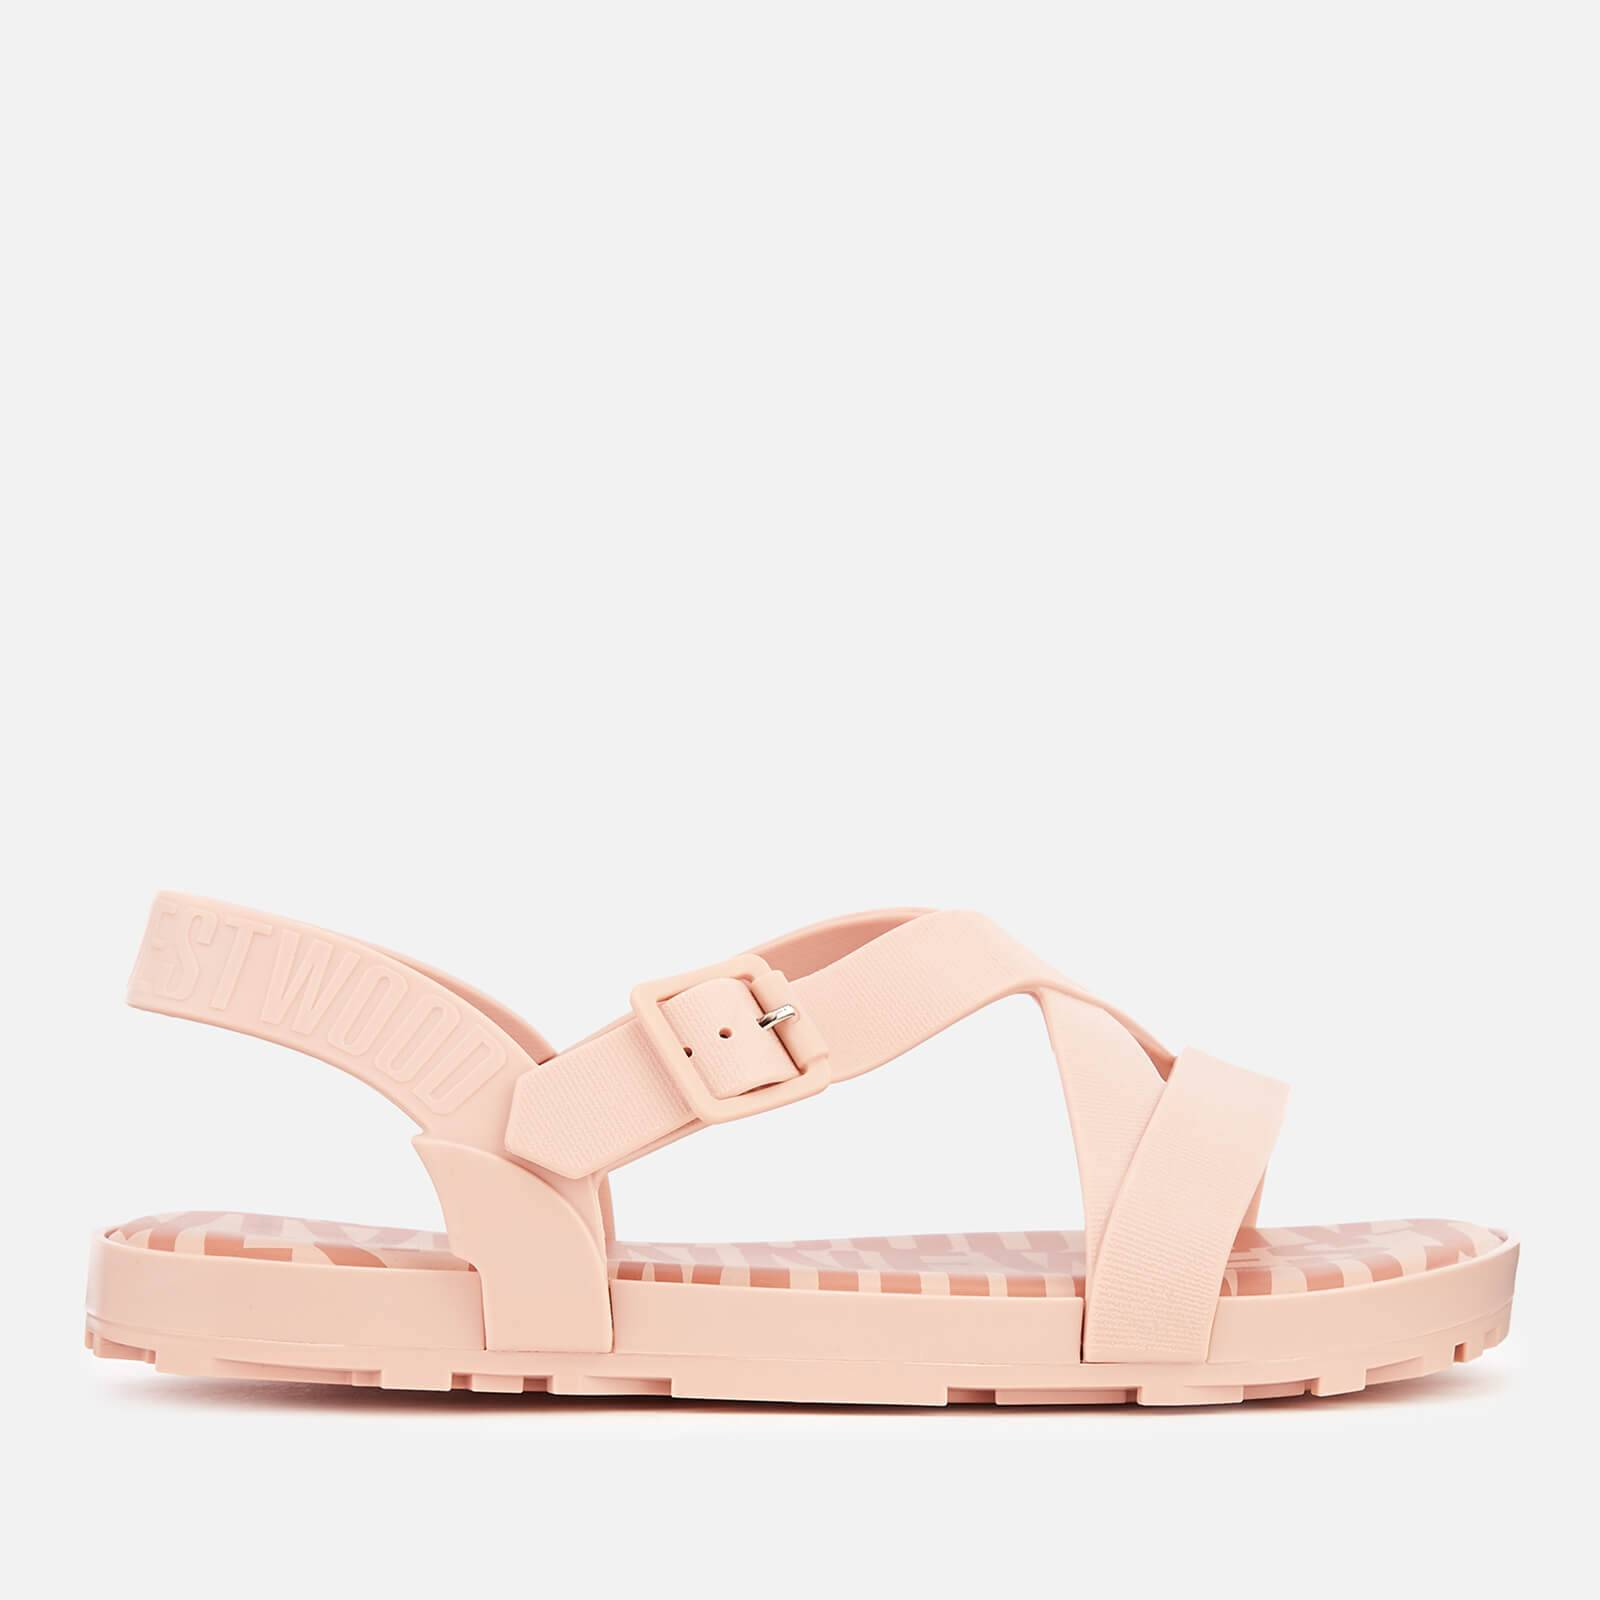 Vivienne Westwood for Melissa Women's Hermanos Strappy Sandals - Baby Pink - UK 6 - Pink